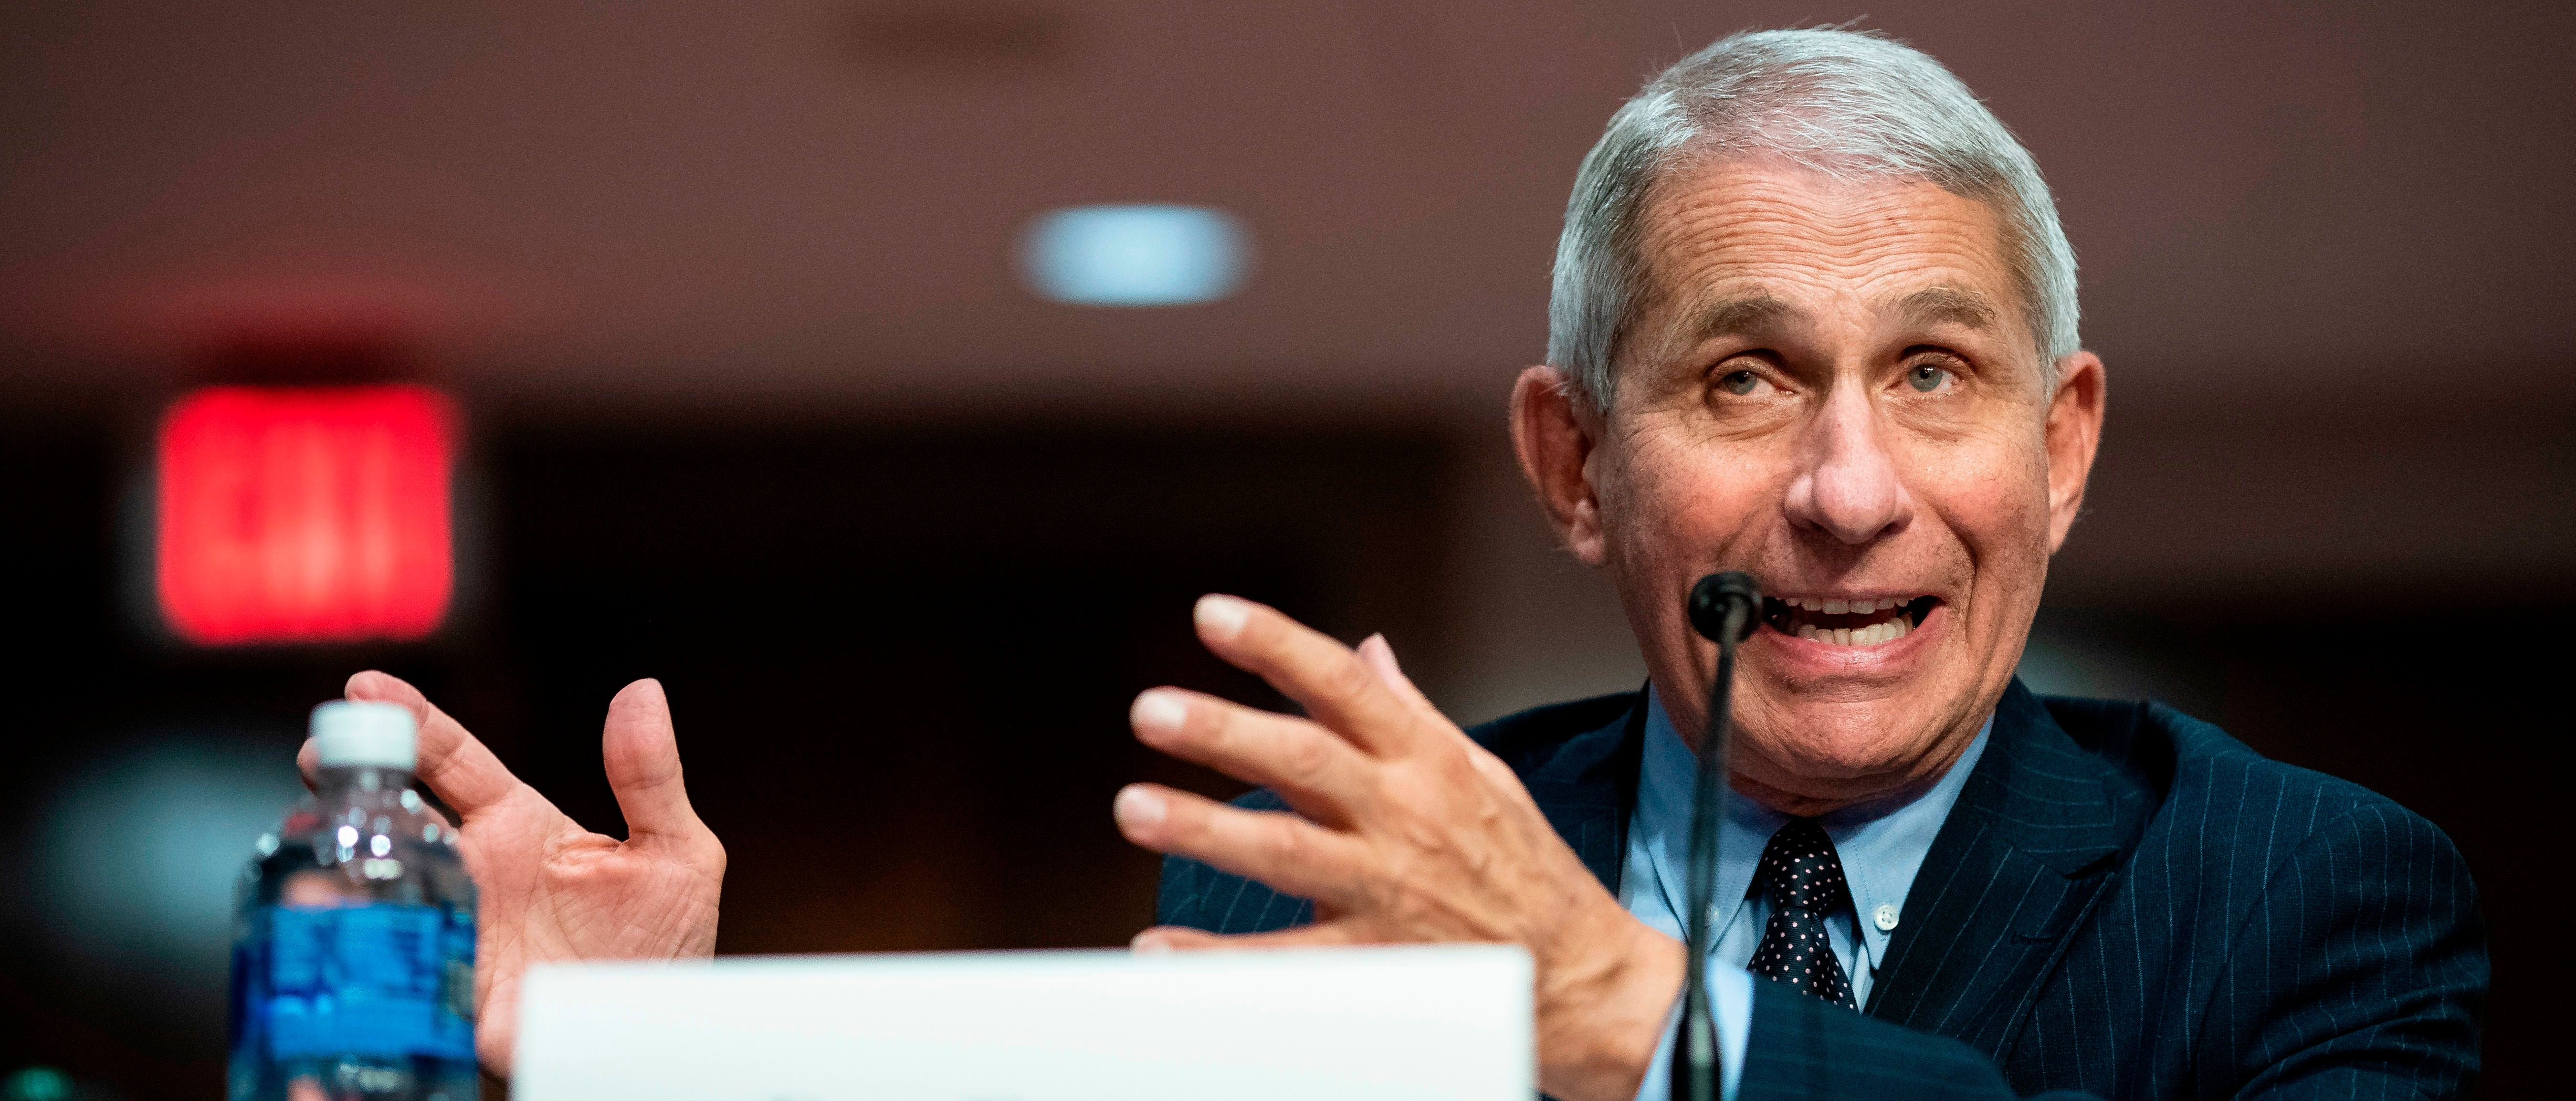 Anthony Fauci, director of the National Institute of Allergy and Infectious Diseases, speaks during a Senate Health, Education, Labor and Pensions Committee hearing in Washington, DC, on June 30, 2020. (Photo: Al Drago/AFP via Getty Images)